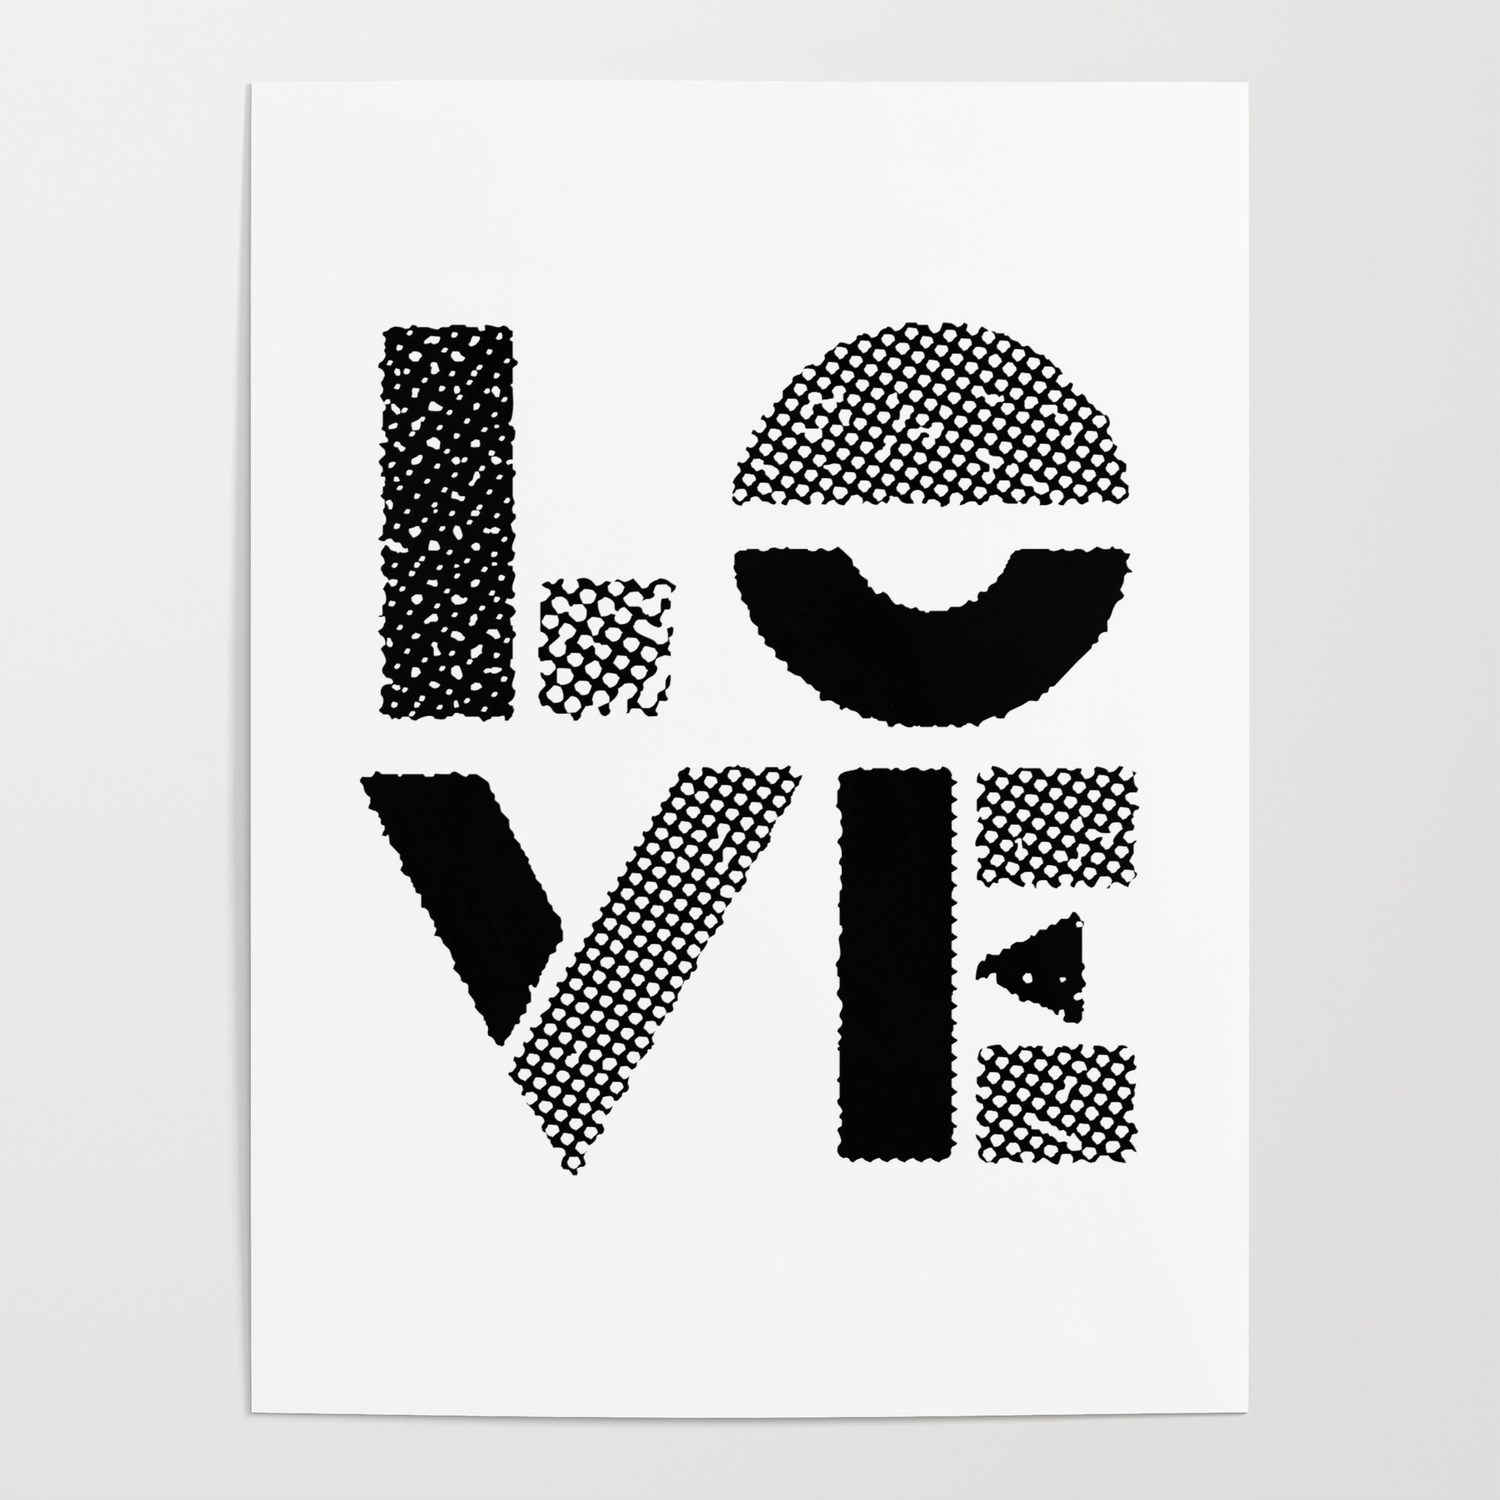 Love black white contemporary minimalist vintage typography poster design home wall decor bedroom poster